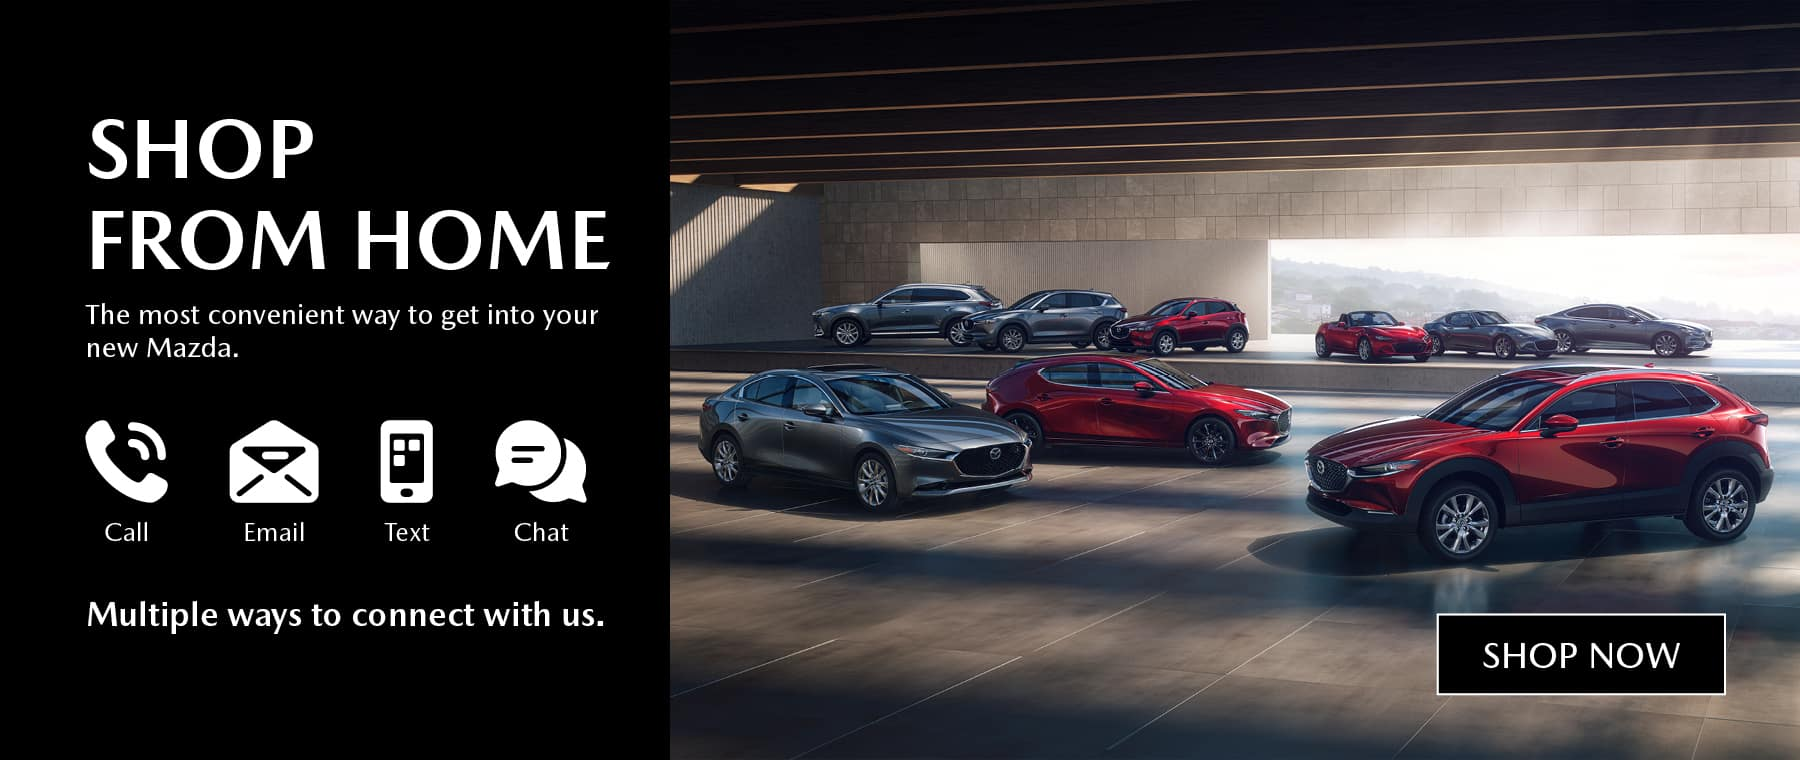 hop from home. The most convenient way to get into your new Mazda. Call, email, text, or chat, there's multiple ways to connect with us. View Inventory.